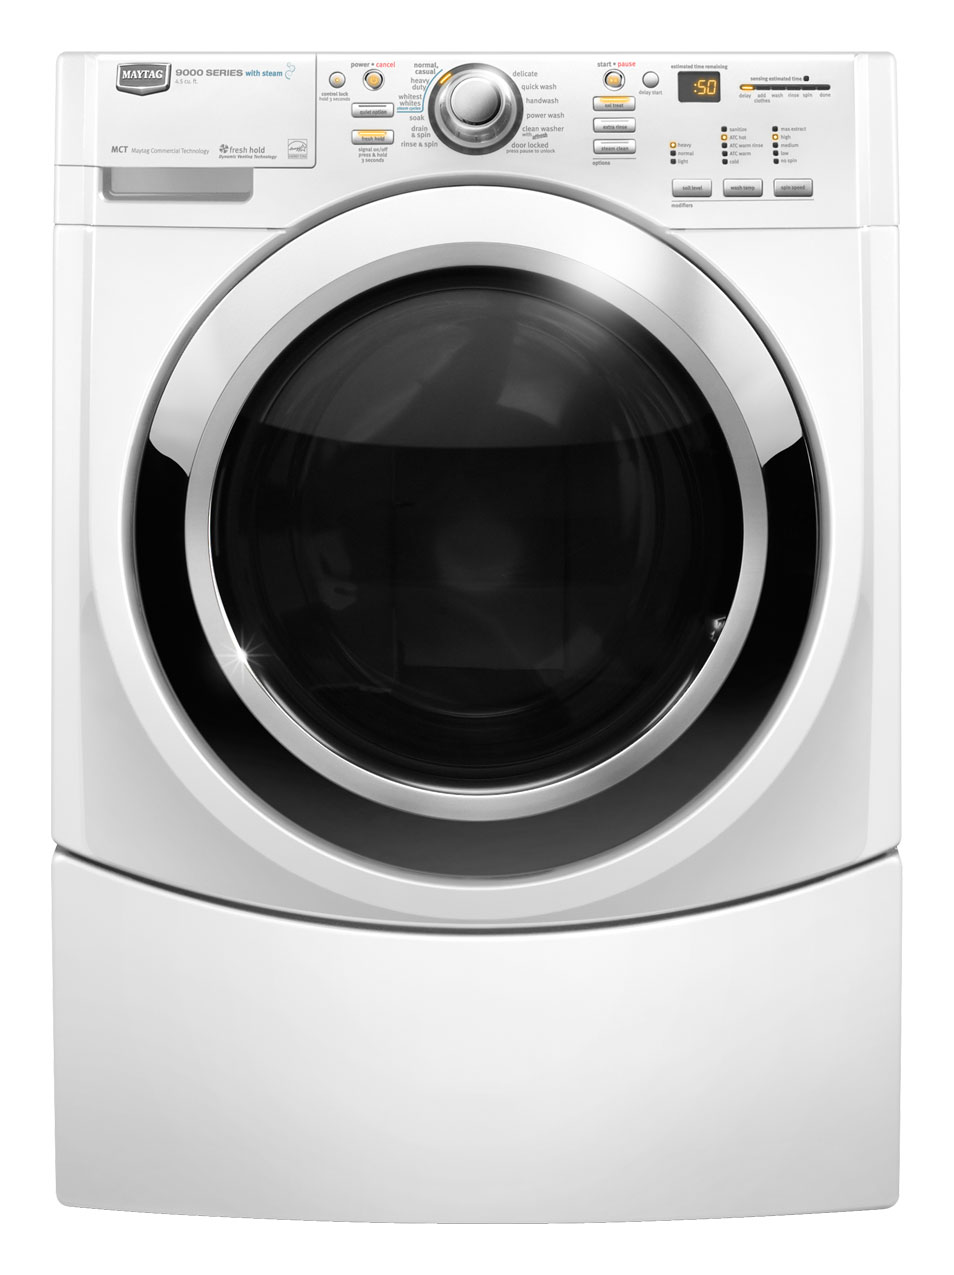 Review of Maytag Performance 3.9 cu ft High-Efficiency Front-Load Washers (White) ENERGY STAR (Model #: MHWE950WW)